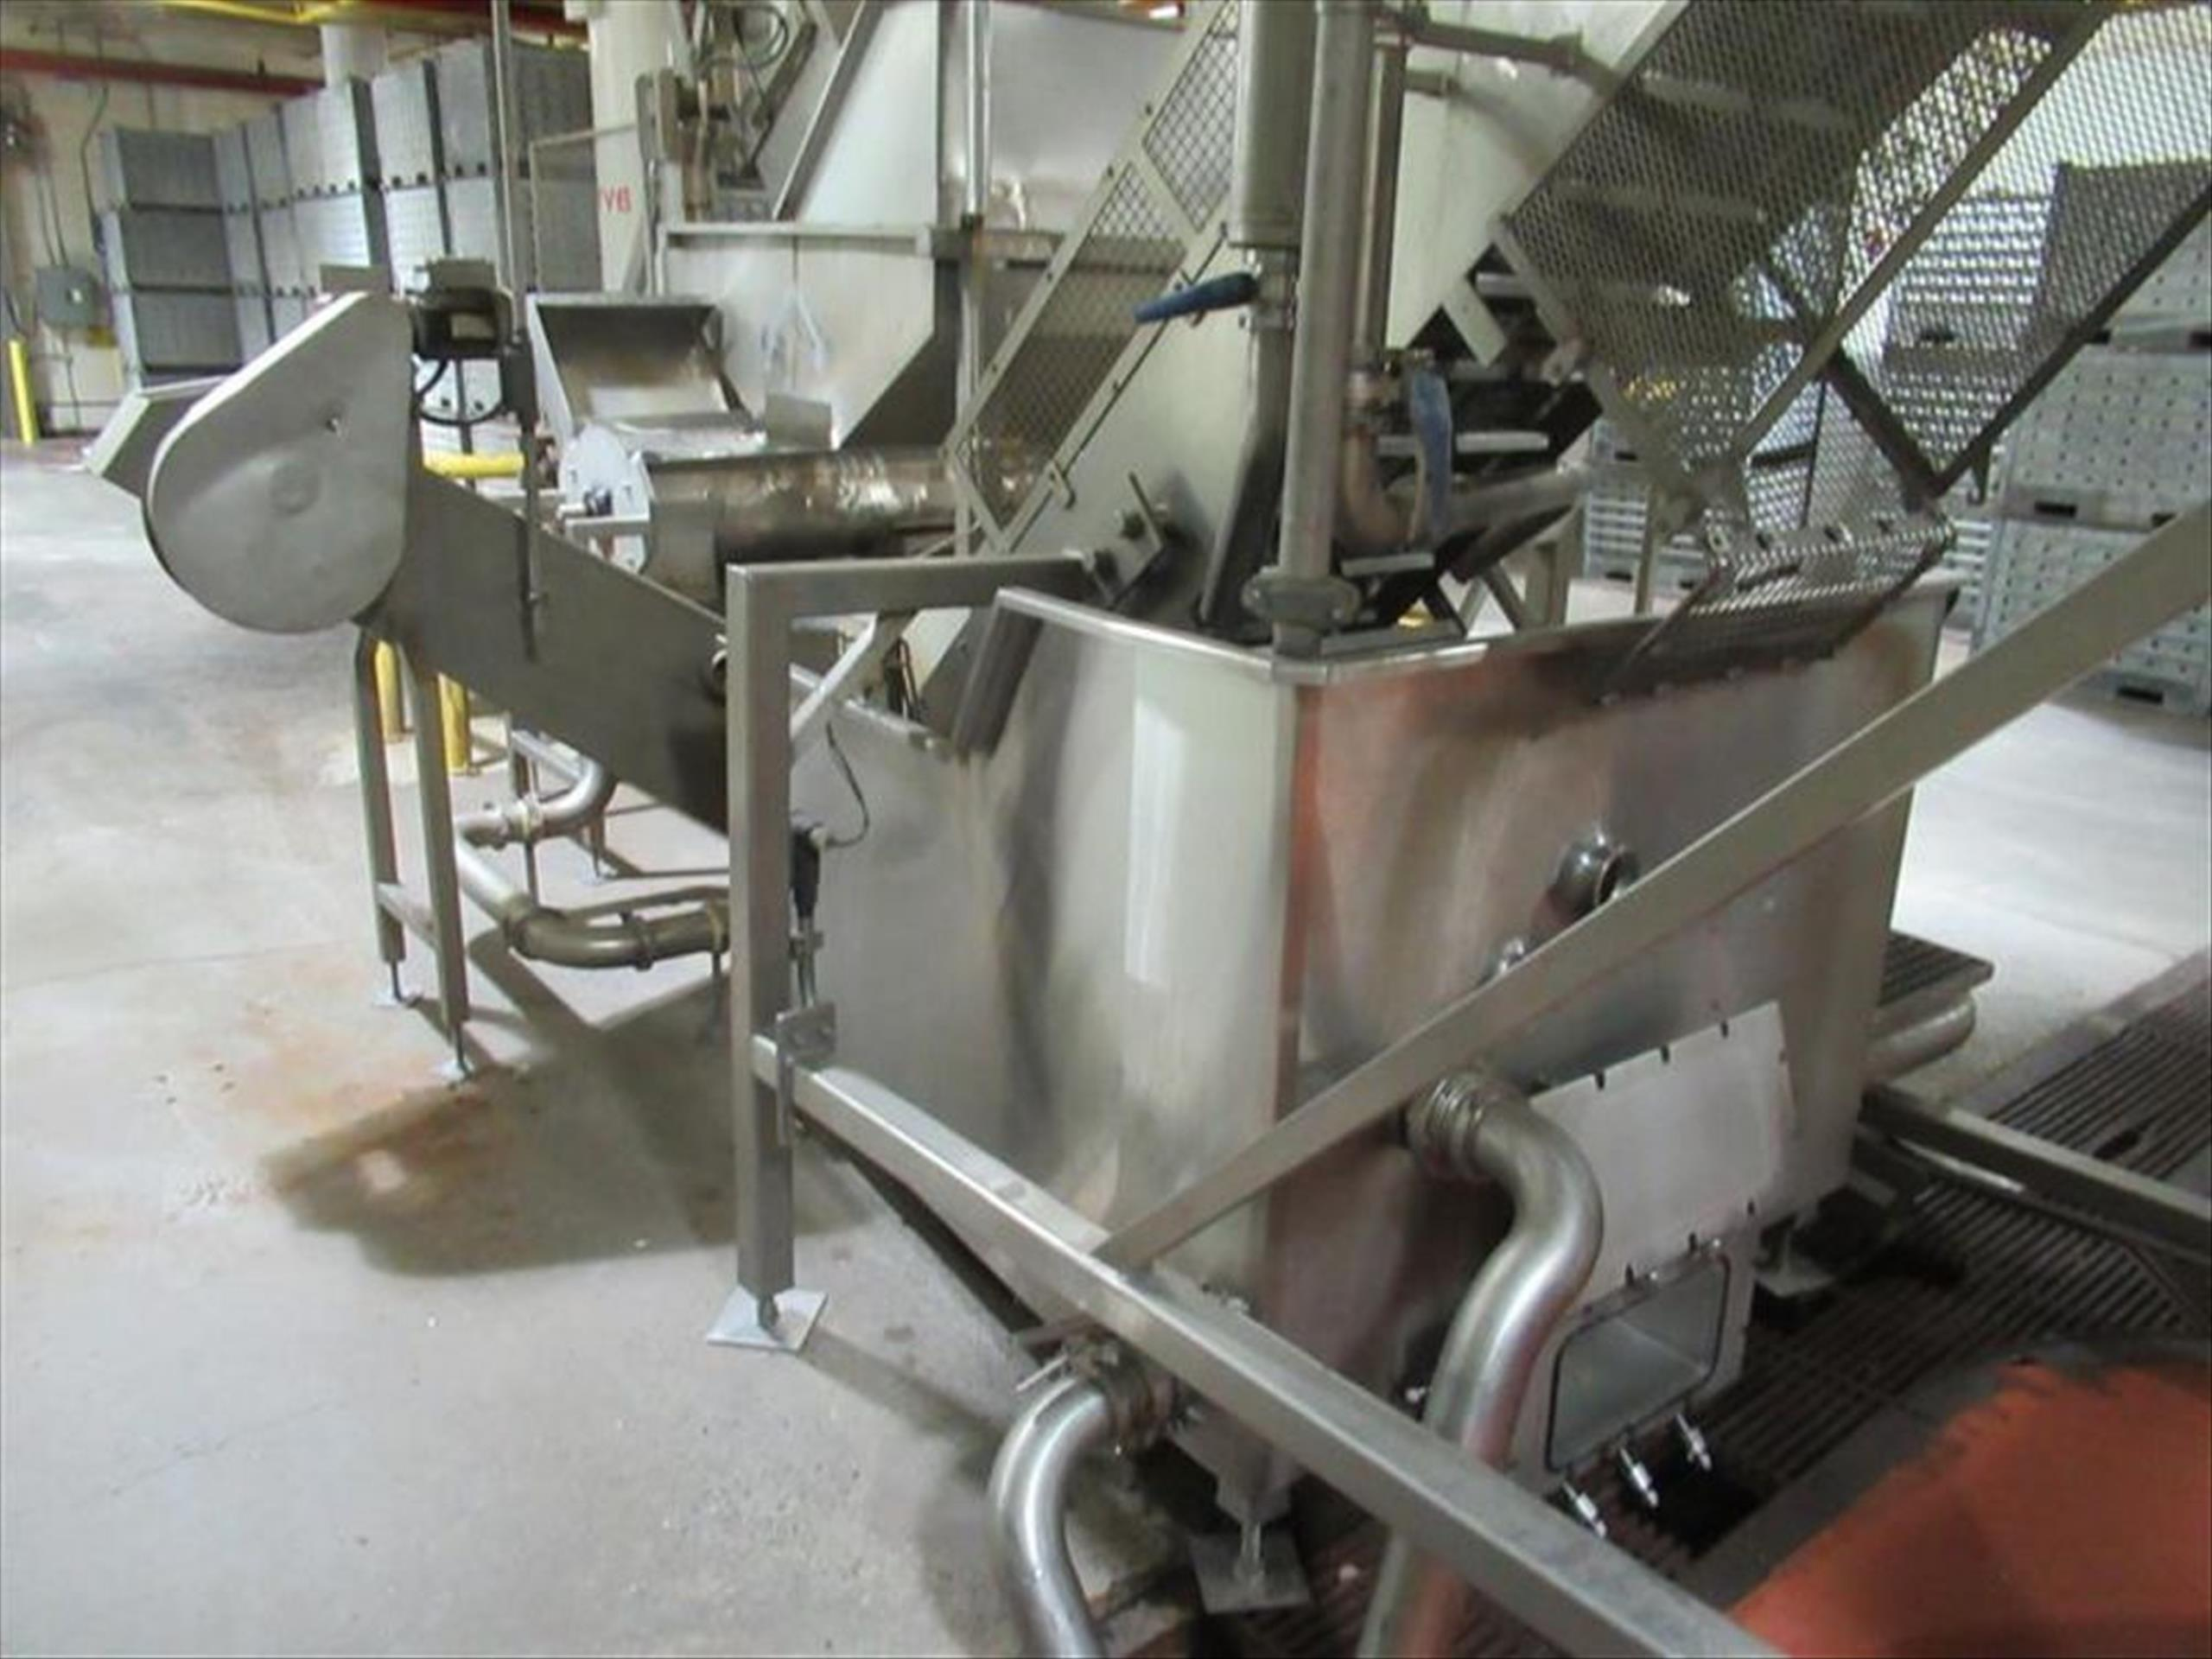 Dewatering / destoner wash tank system include 24 in w x 15 ft l x 14 ft h elevating conveyor with - Image 3 of 4